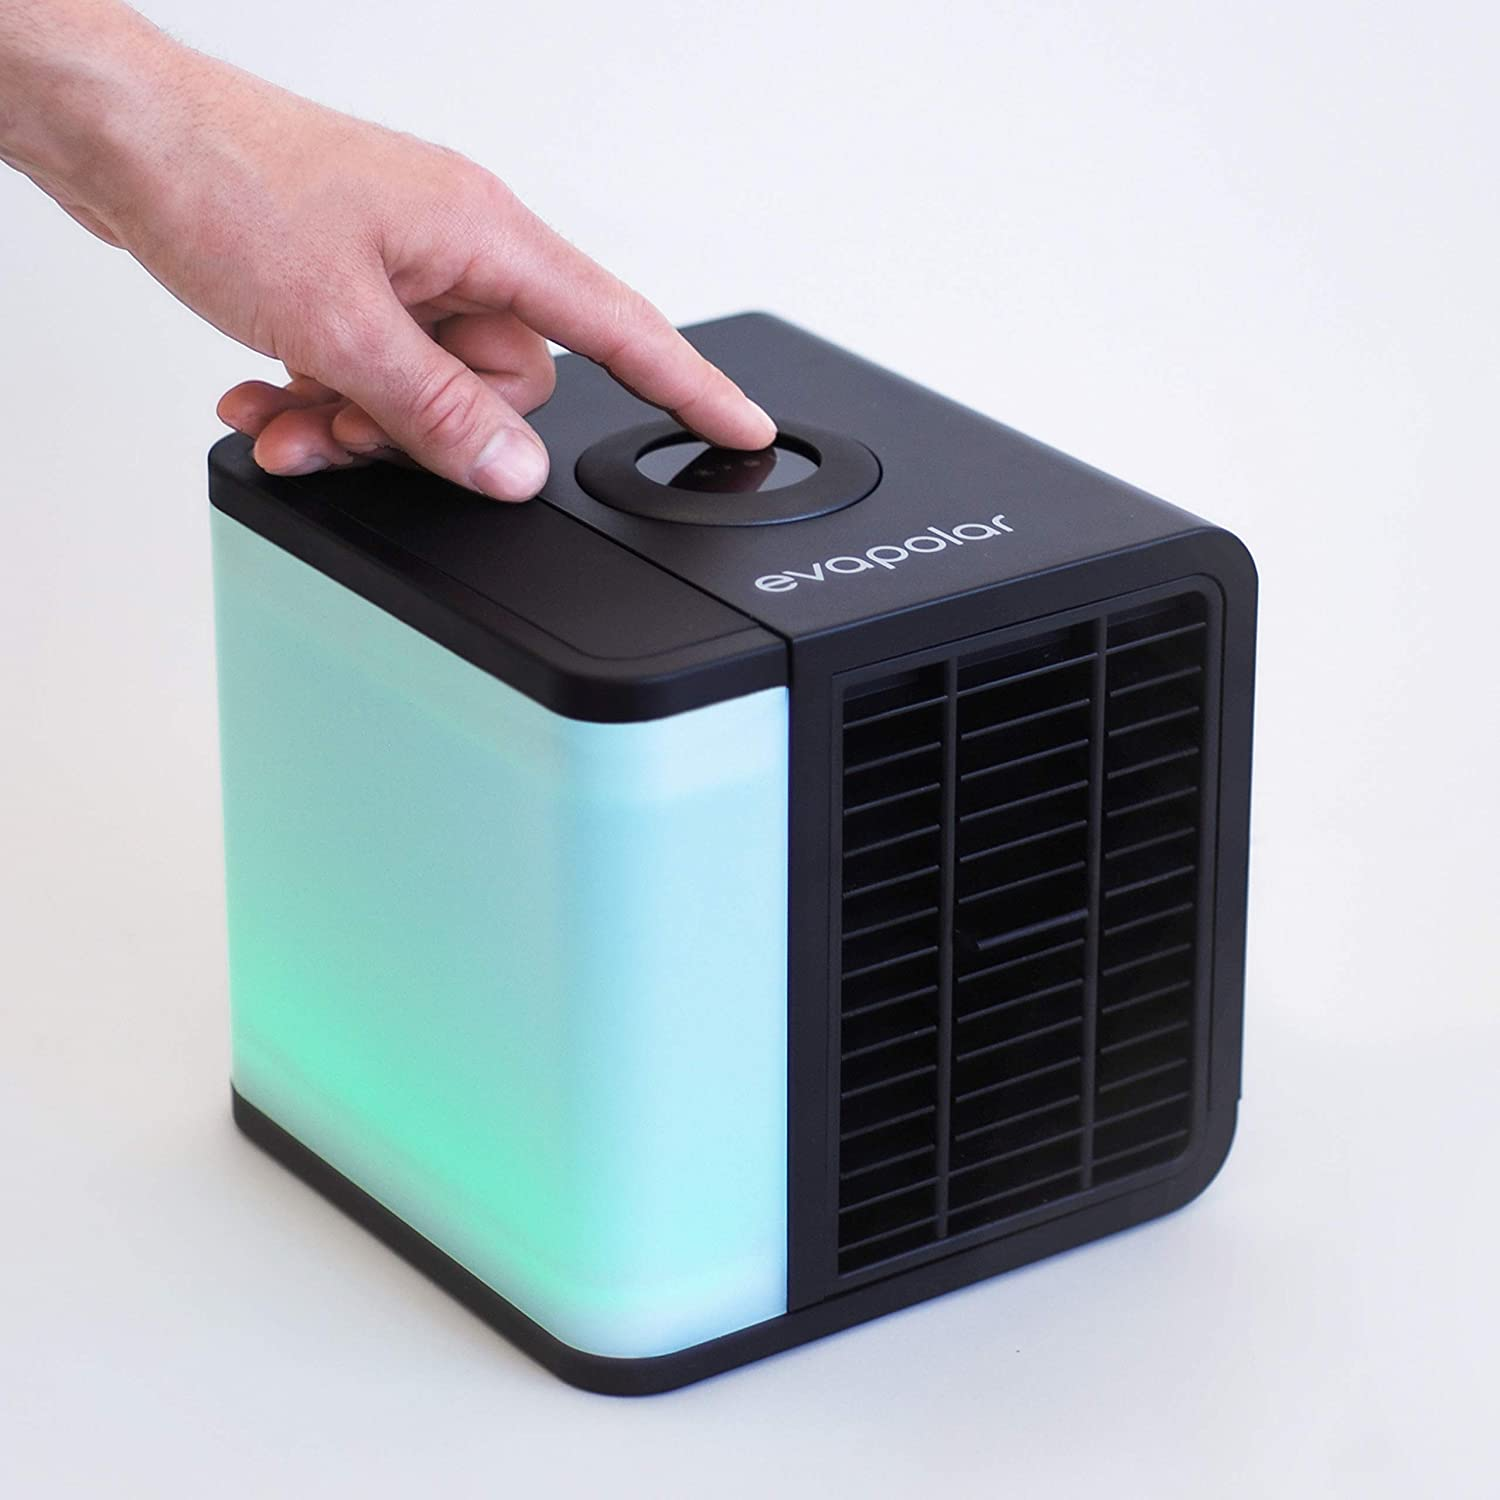 20+ Cool Tech Gadgets & New High Tech Products 2020